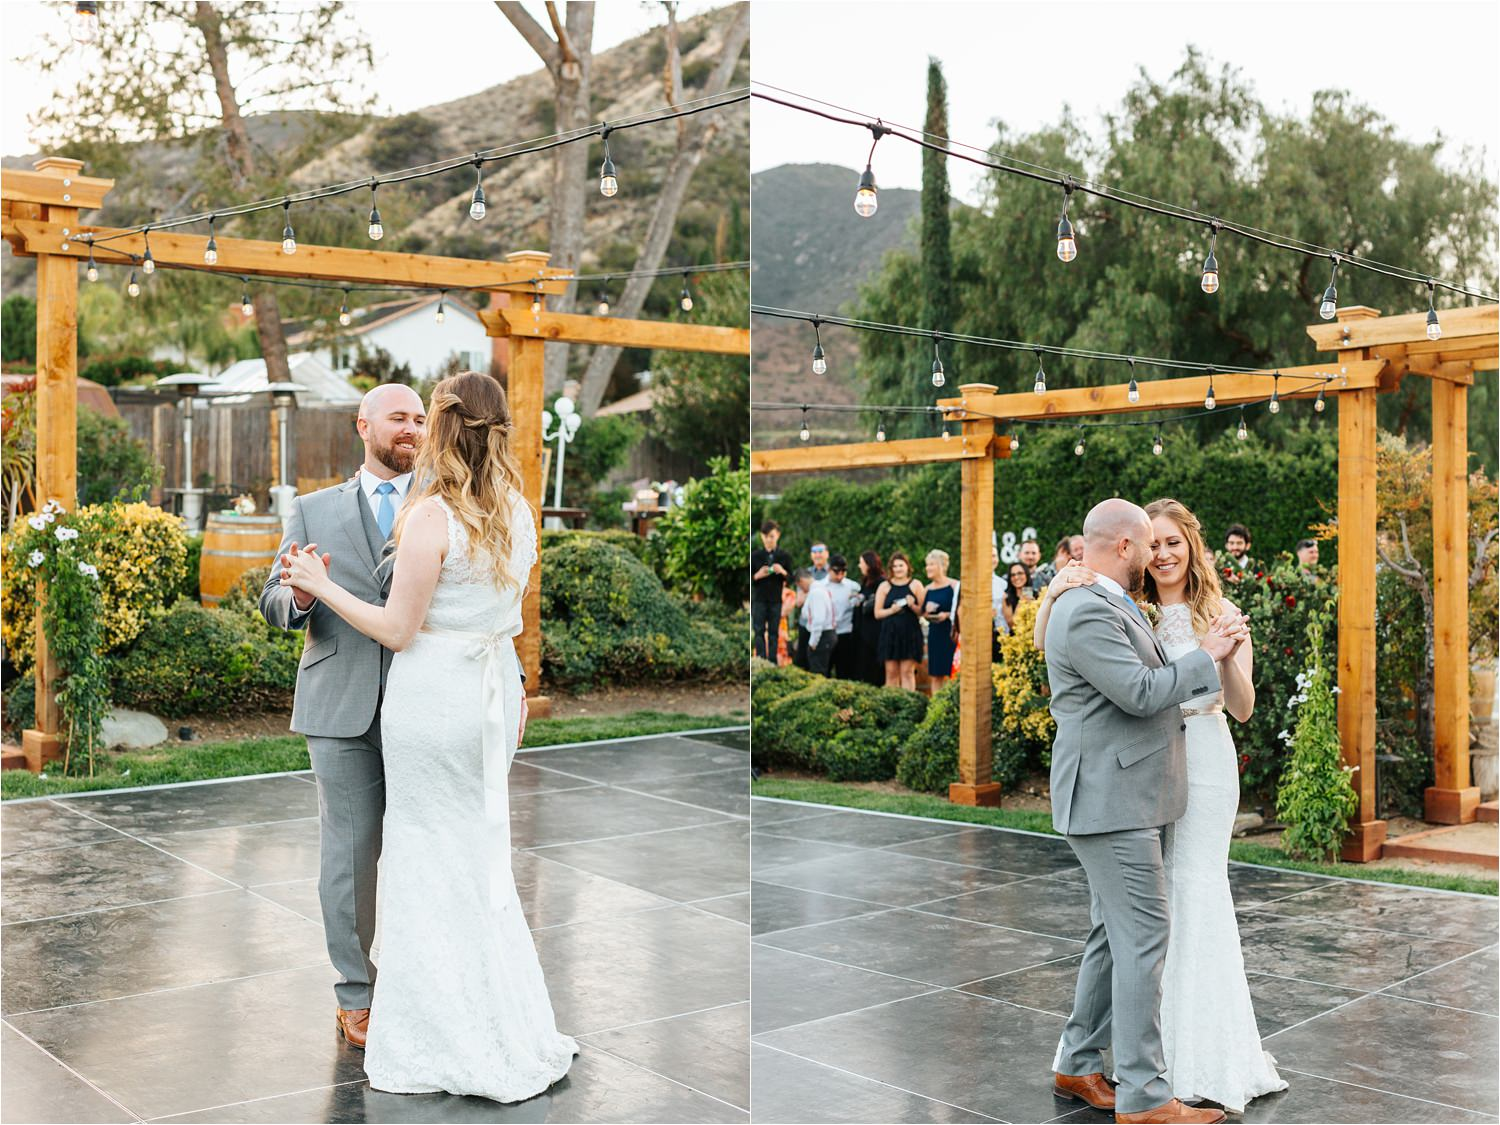 Super sweet first dance between bride and groom - https://brittneyhannonphotography.com